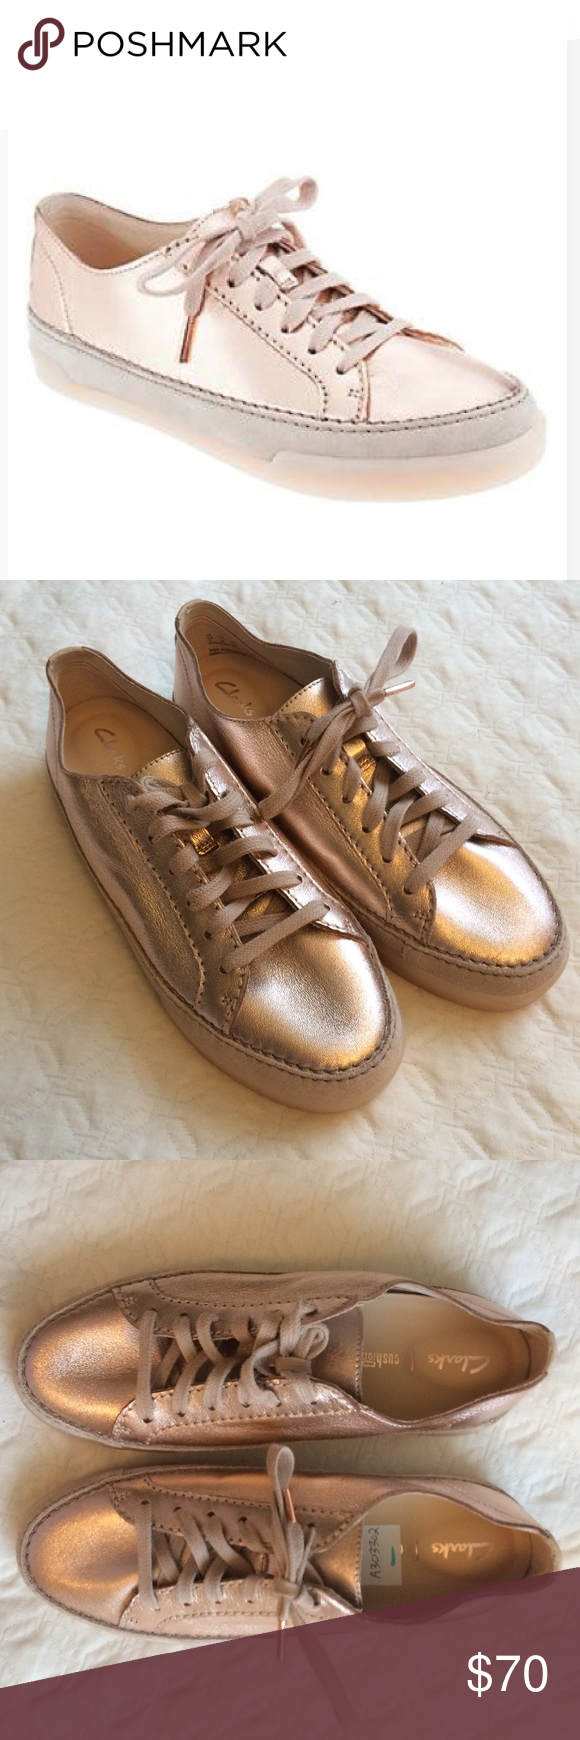 9e6d3444f211 New Clarks Artisan Metallic Rose Gold Sneakers These are very unique and  pretty rose gold leather sneakers! They are very bright in person.